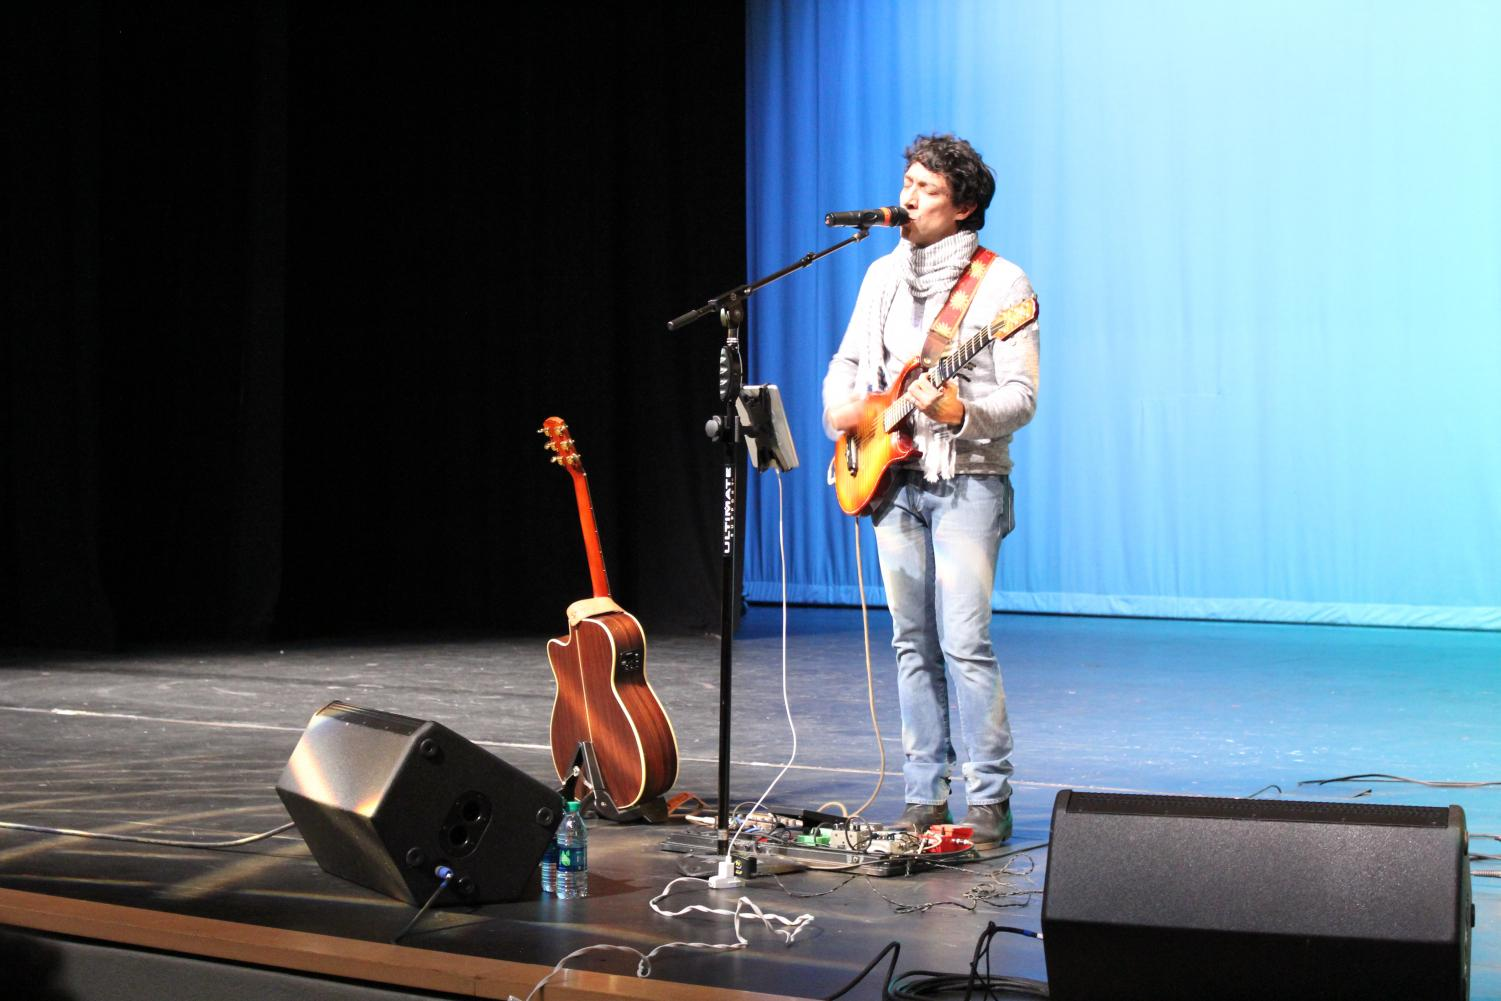 In the theater, Javier Mendoza sings one of his songs for the Spanish class students in attendance. A bilingual artist, Mendoza performed original songs like Cinco Más and The Light, as well as Despacito by Luis Fonsi.